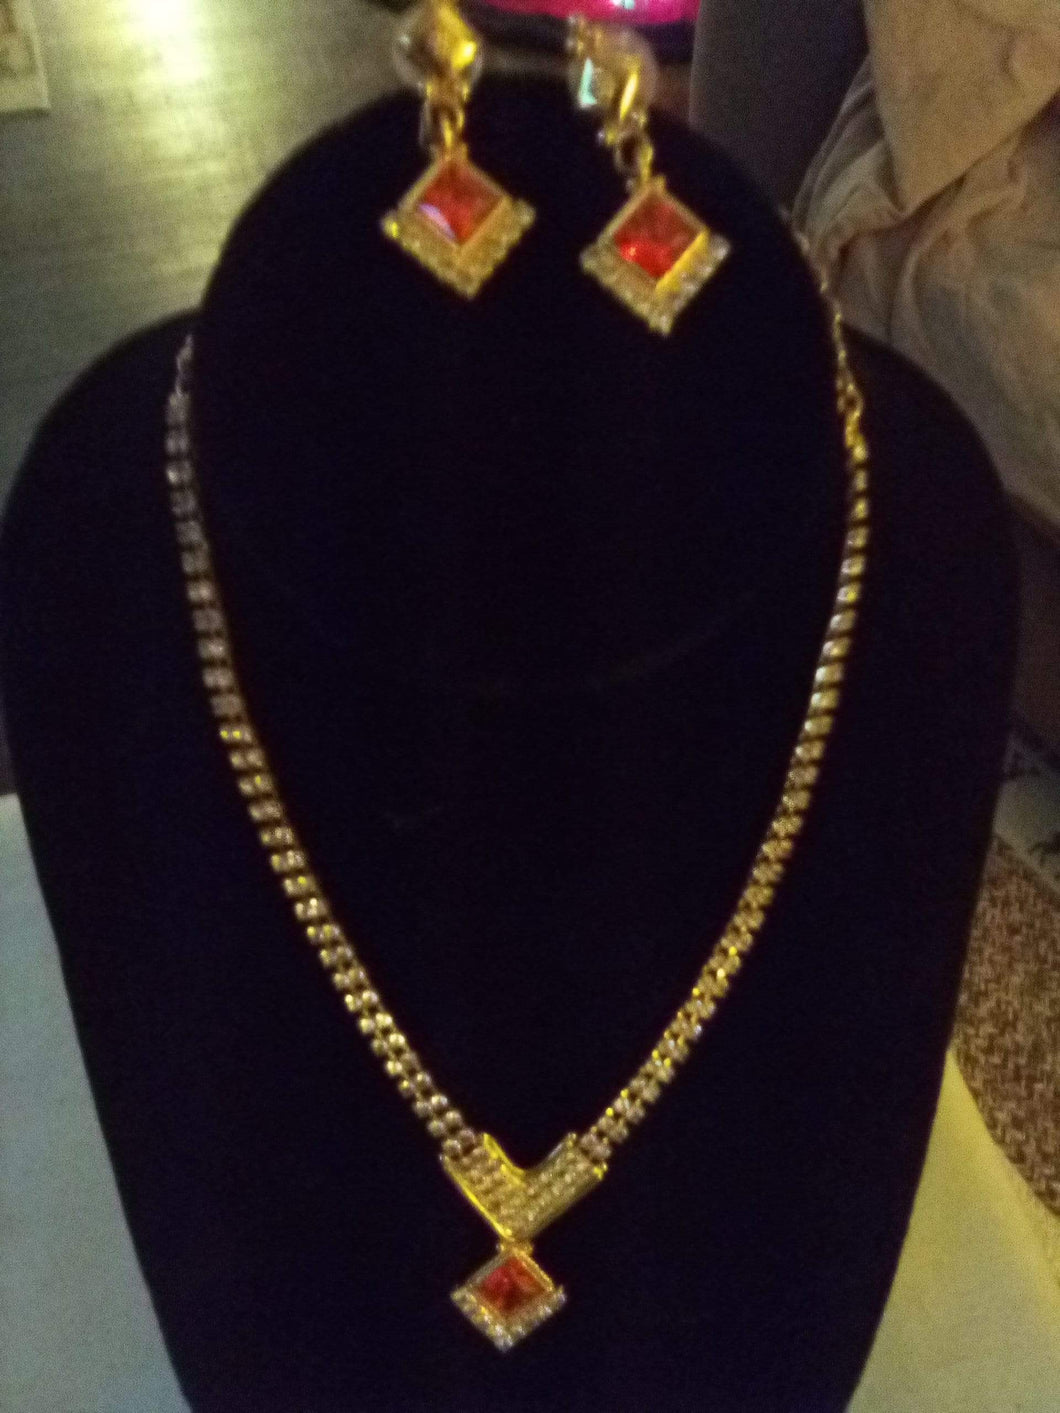 Pretty necklace and pierced earring set - B&P'sringsnthings